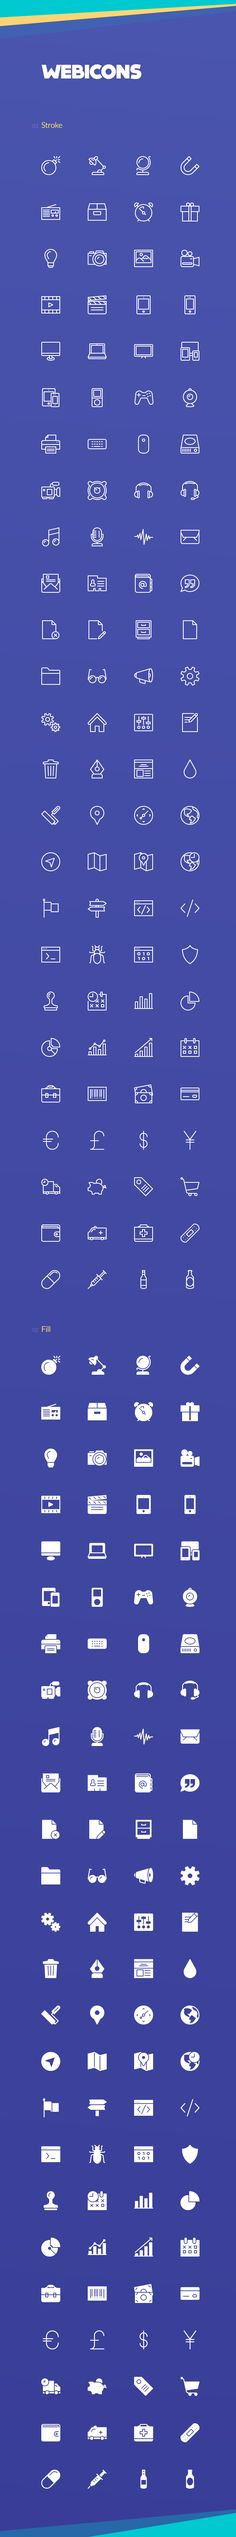 Webicons – 100 Stroke & Fill Icons